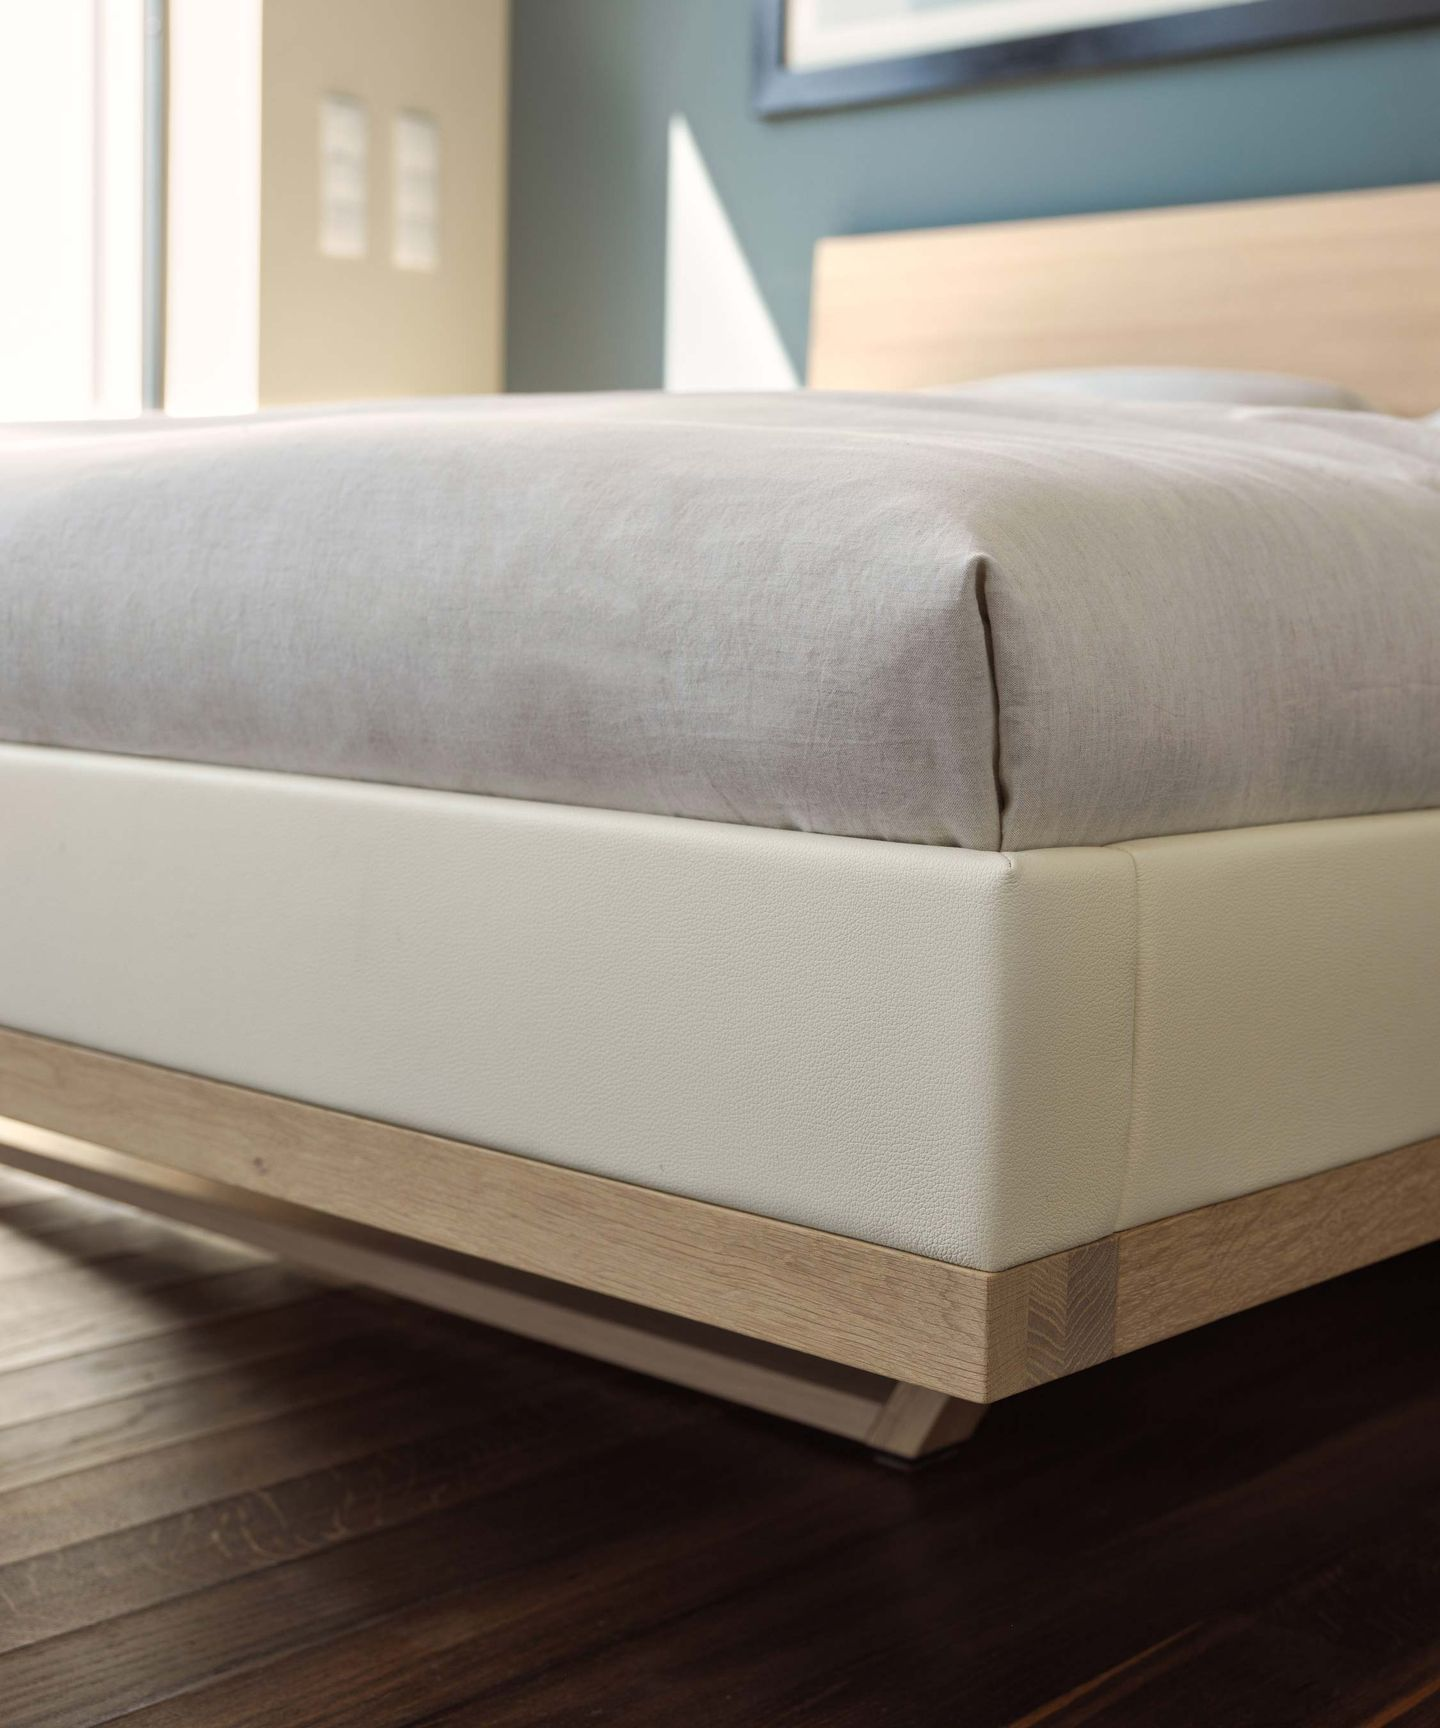 riletto solid wood bed with leather bed sides